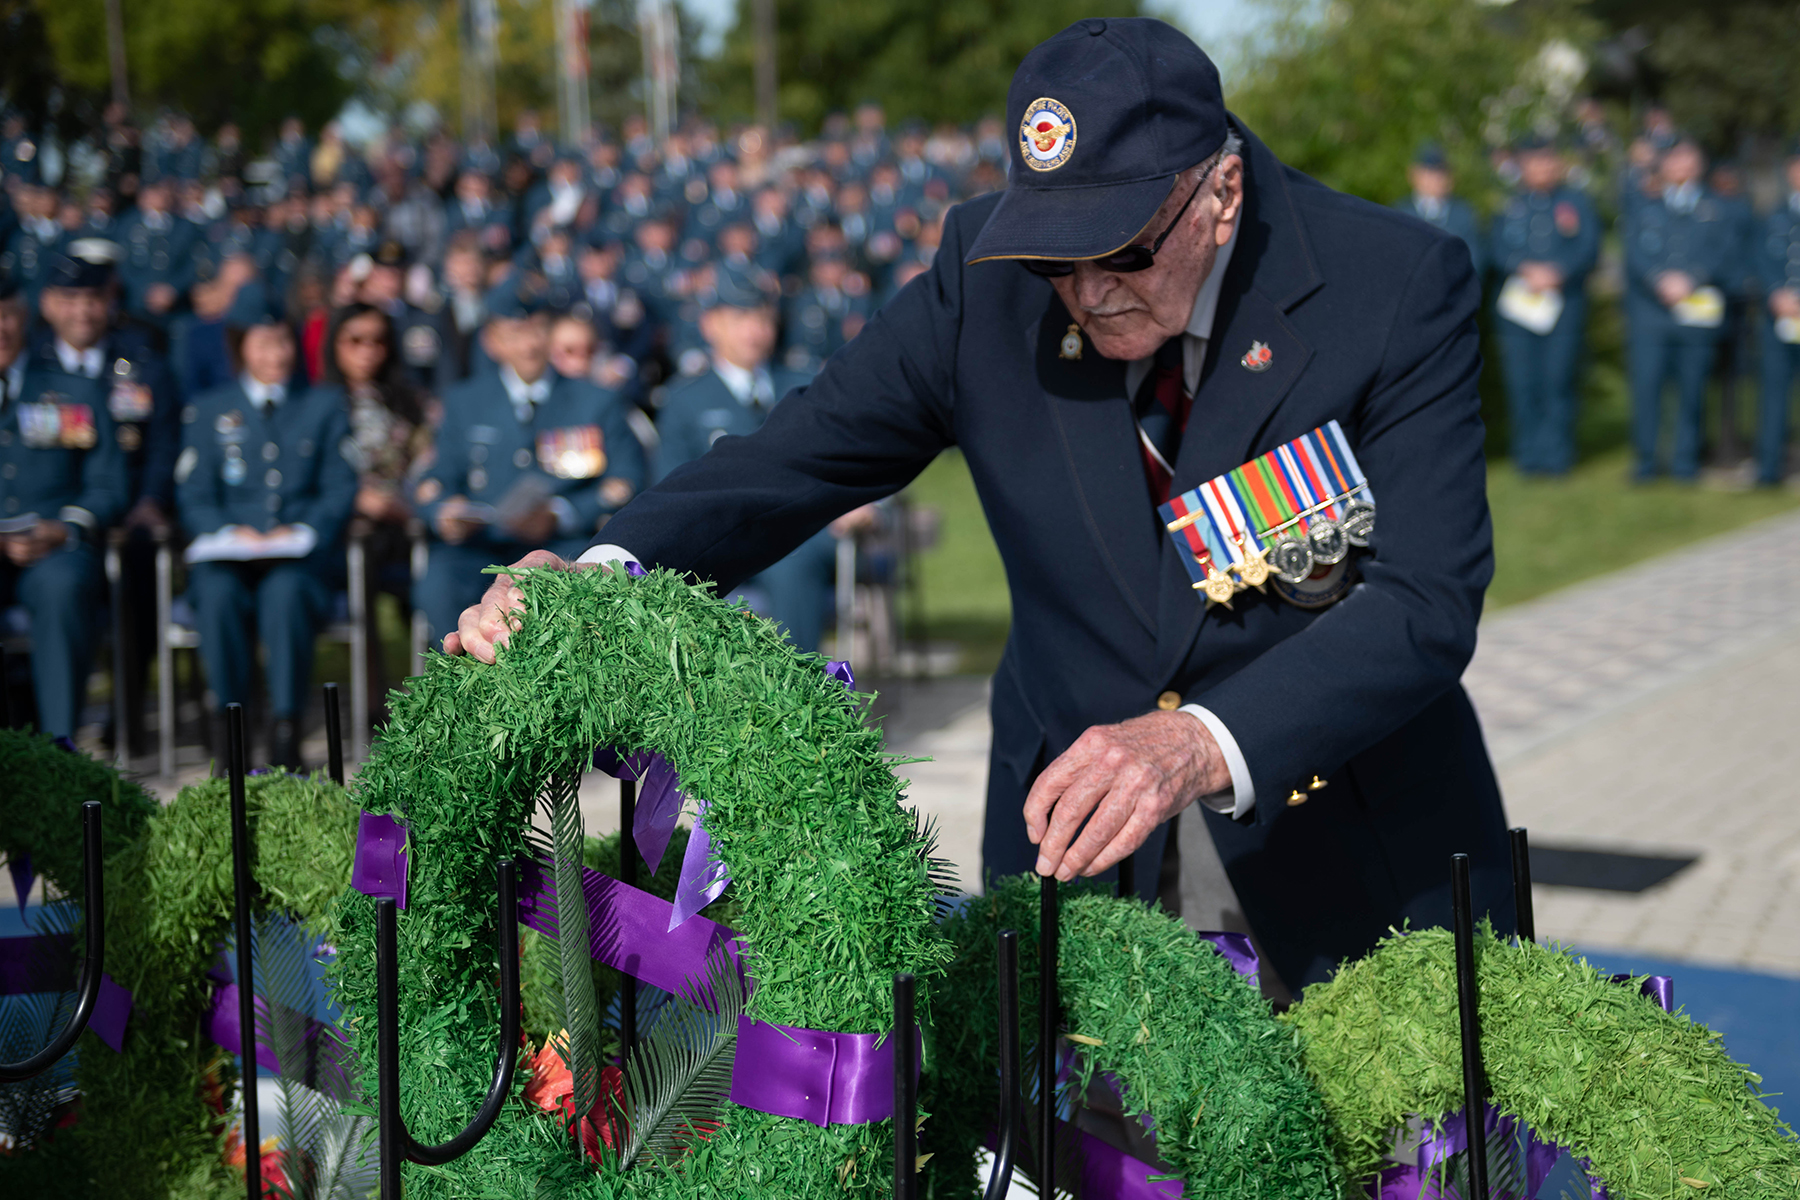 Flying Officer (retired) Ralph Wild lays a wreath on behalf of survivors of the Battle of Britain on September 15, 2019, during the 17 Wing Winnipeg, Manitoba, Battle of Britain remembrance ceremony. Flying Officer Wild, a veteran of the Battle, turned 101 on September 27, 2019. PHOTO: Corporal Angela Gore, WG2019-0456-007